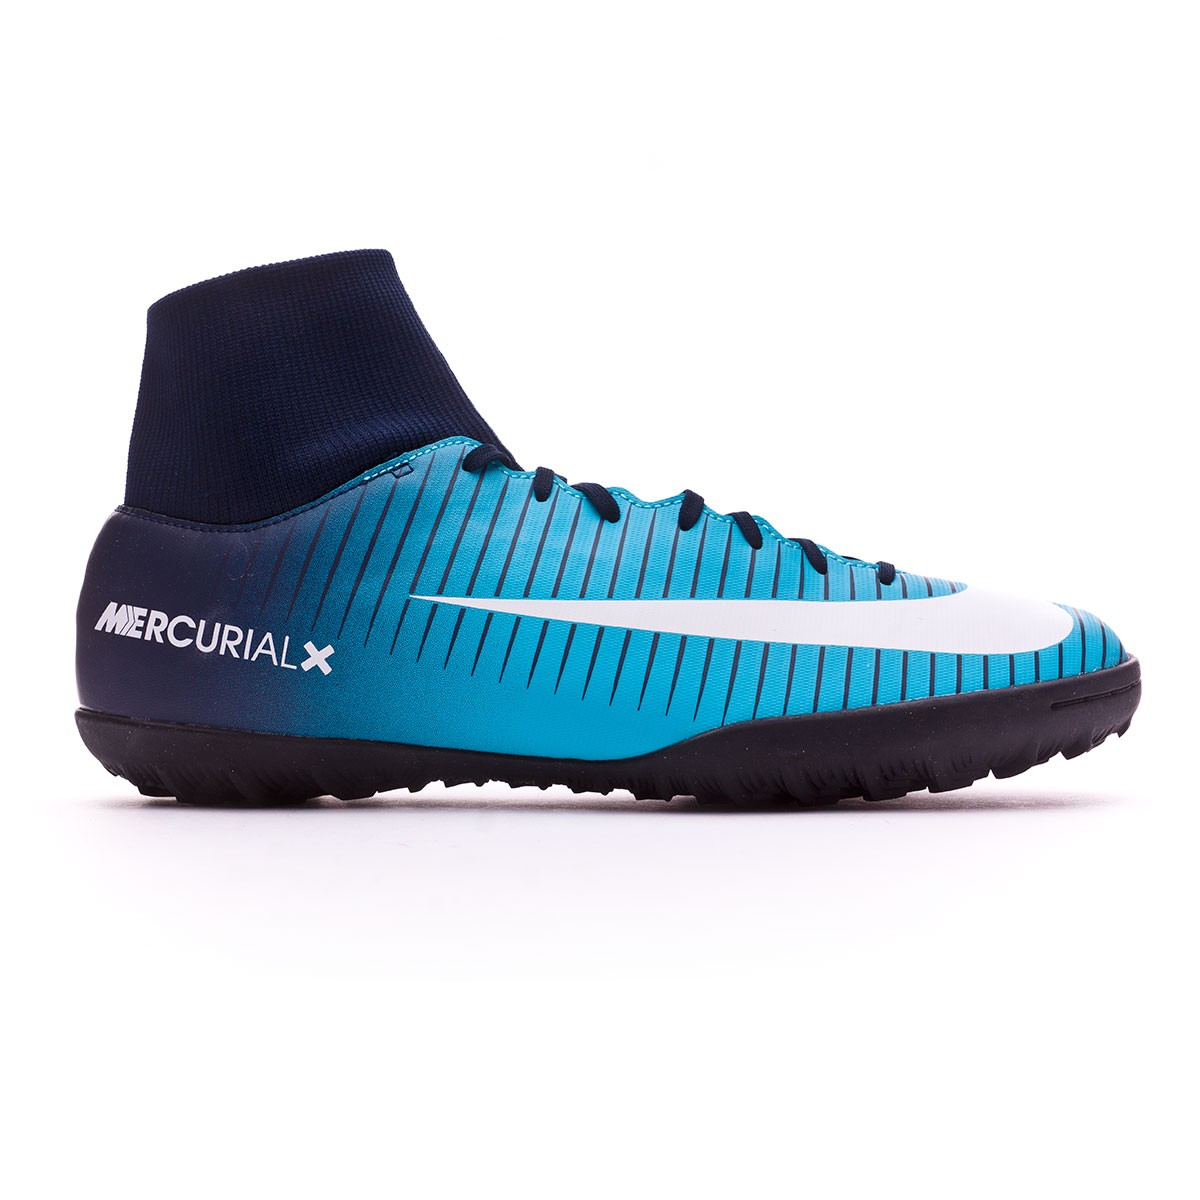 fast delivery best price cheap for discount Nike MercurialX Victory VI DF Turf Football Boot